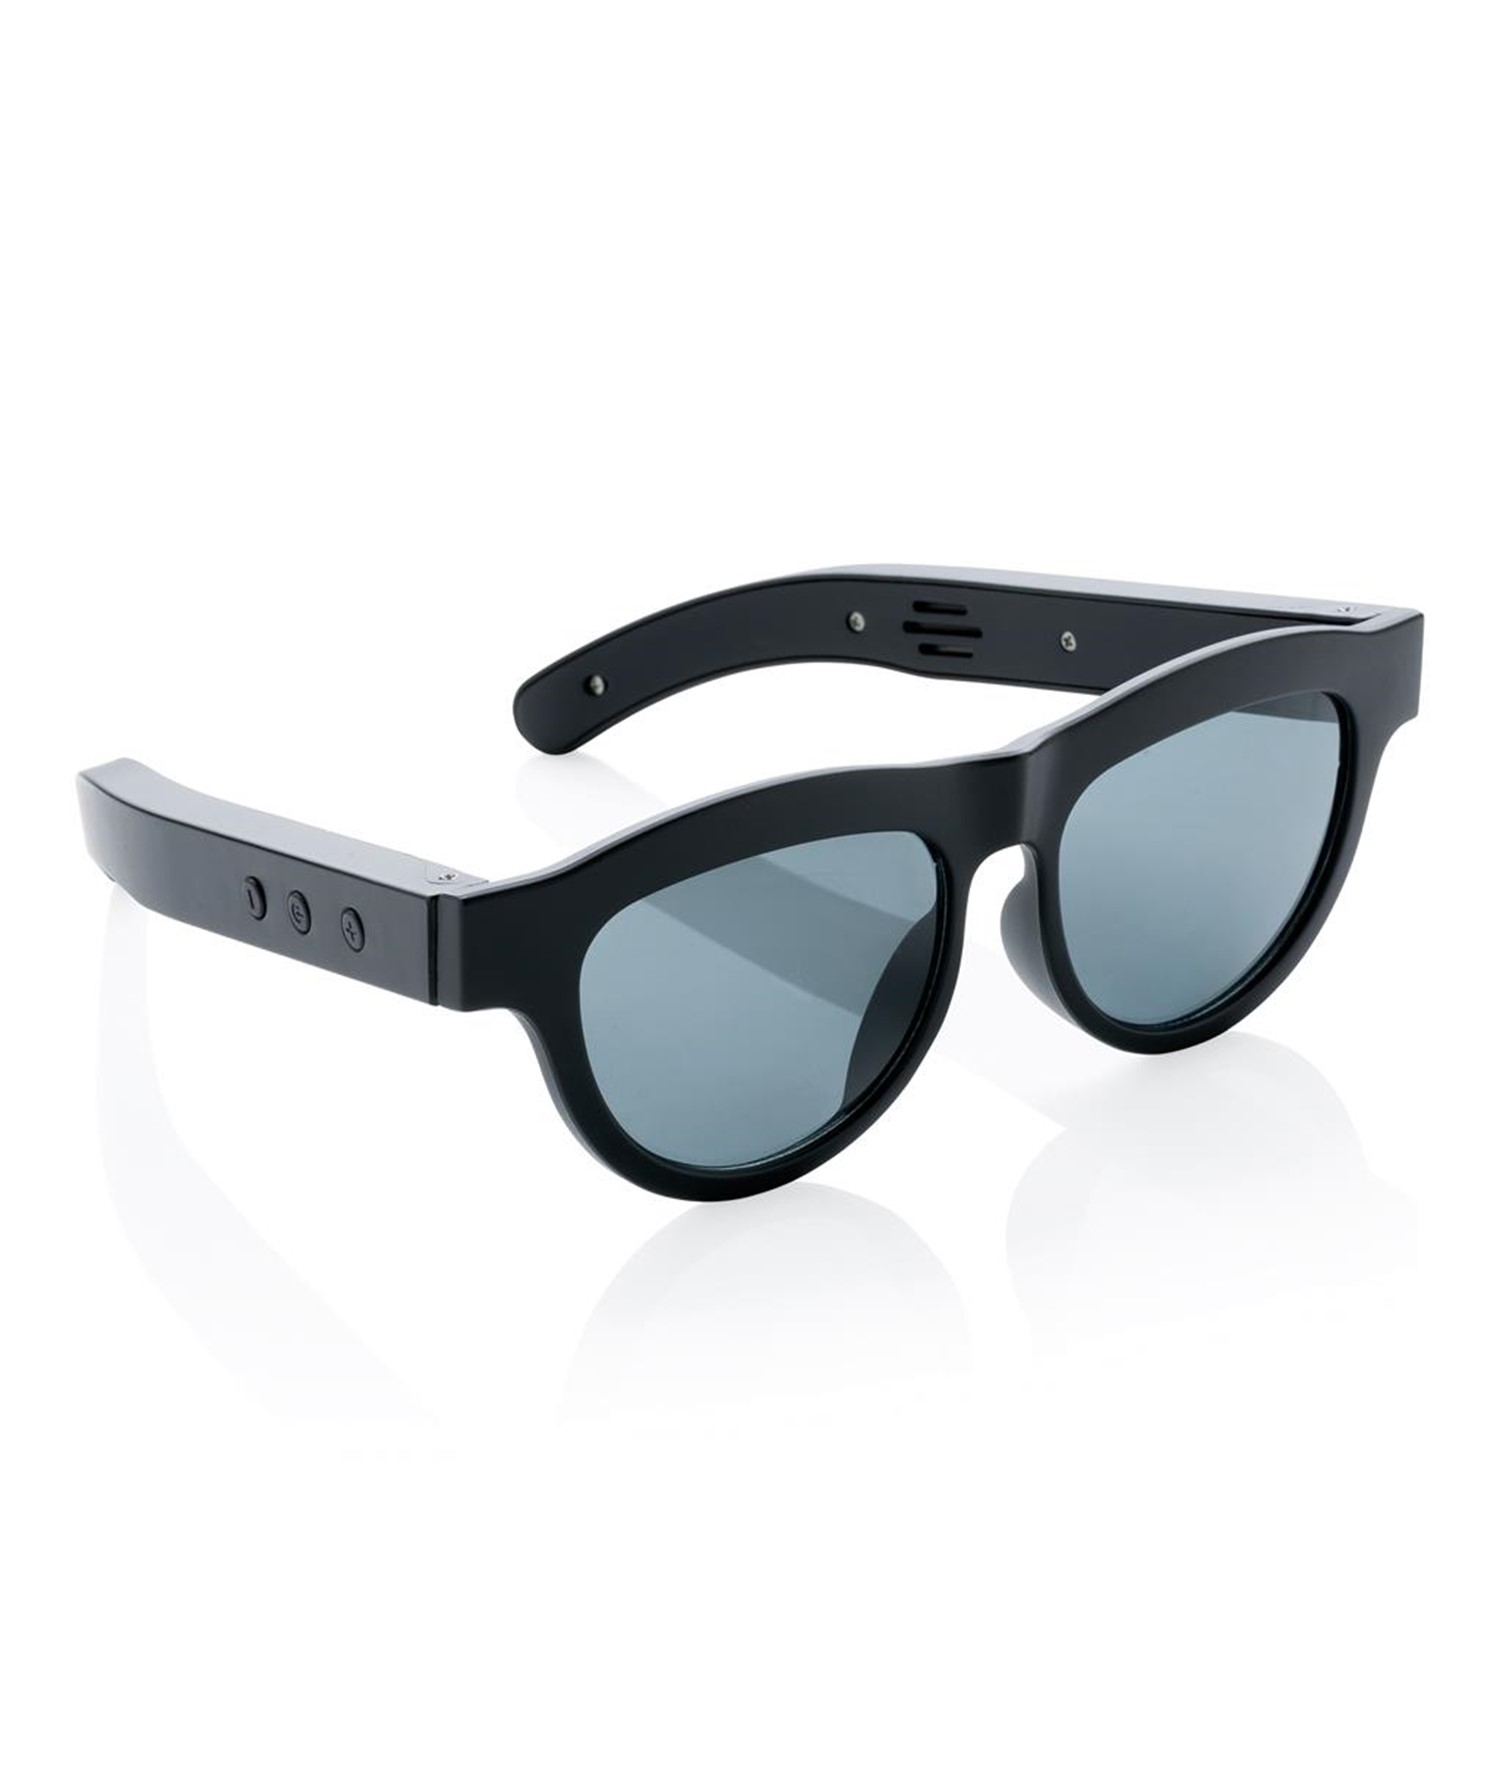 WIRELESS SPEAKER SUNGLASSES, BLACK